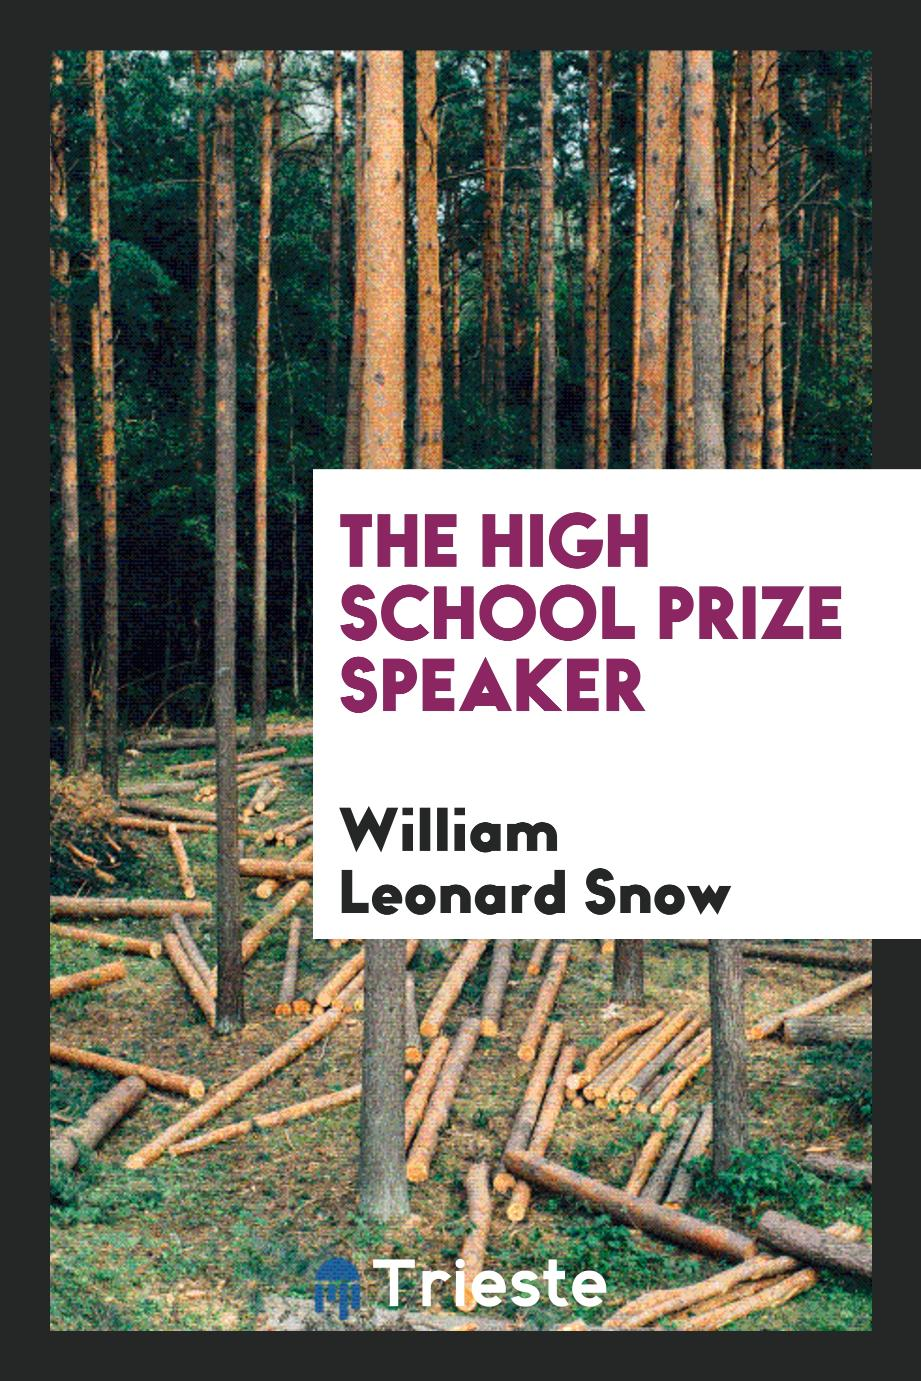 The high school prize speaker